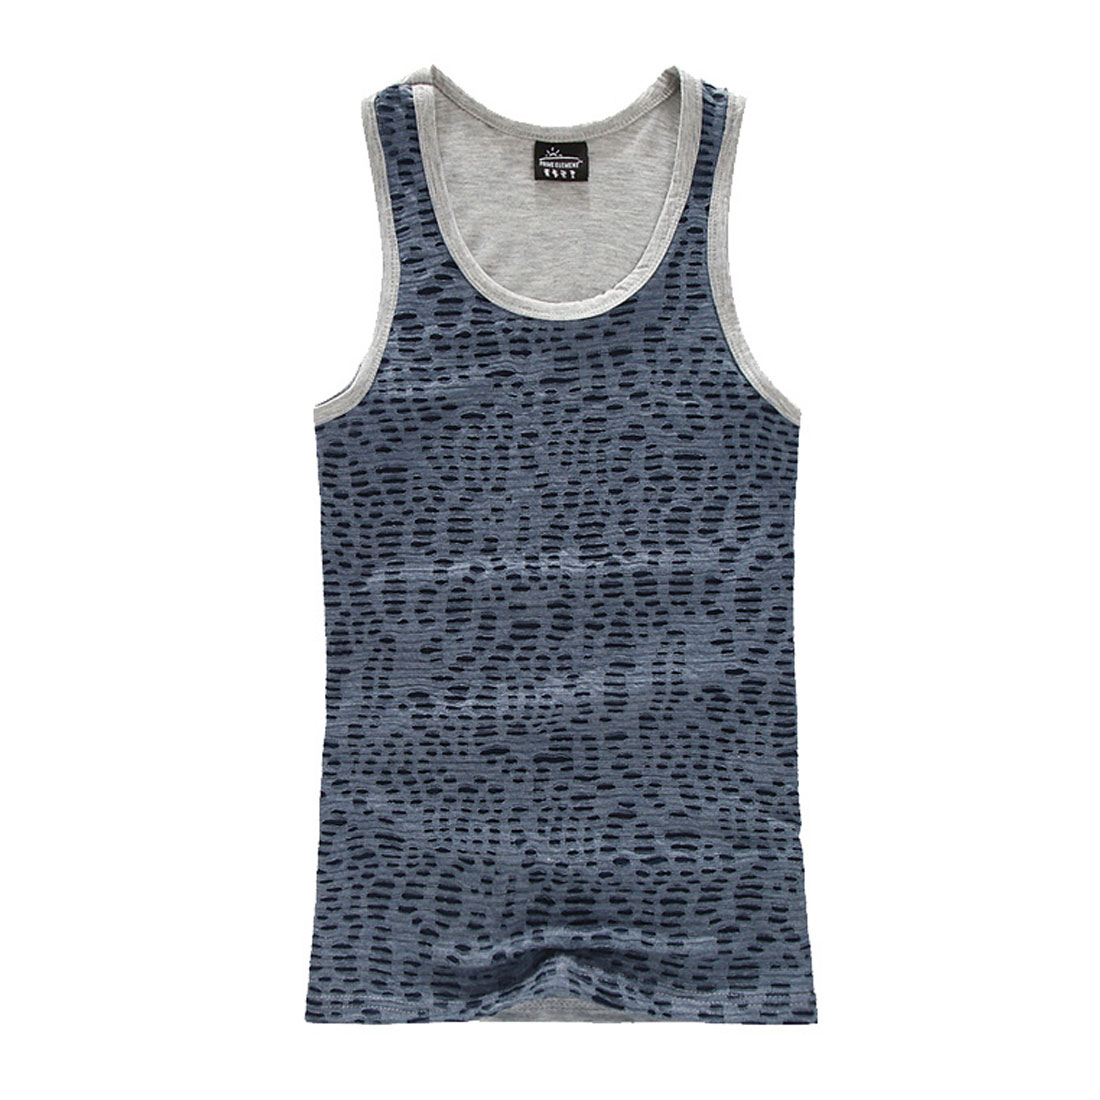 Men U Neck Round Hem Semi Sheer Form-fitting Light Gray S Tank Top Tee